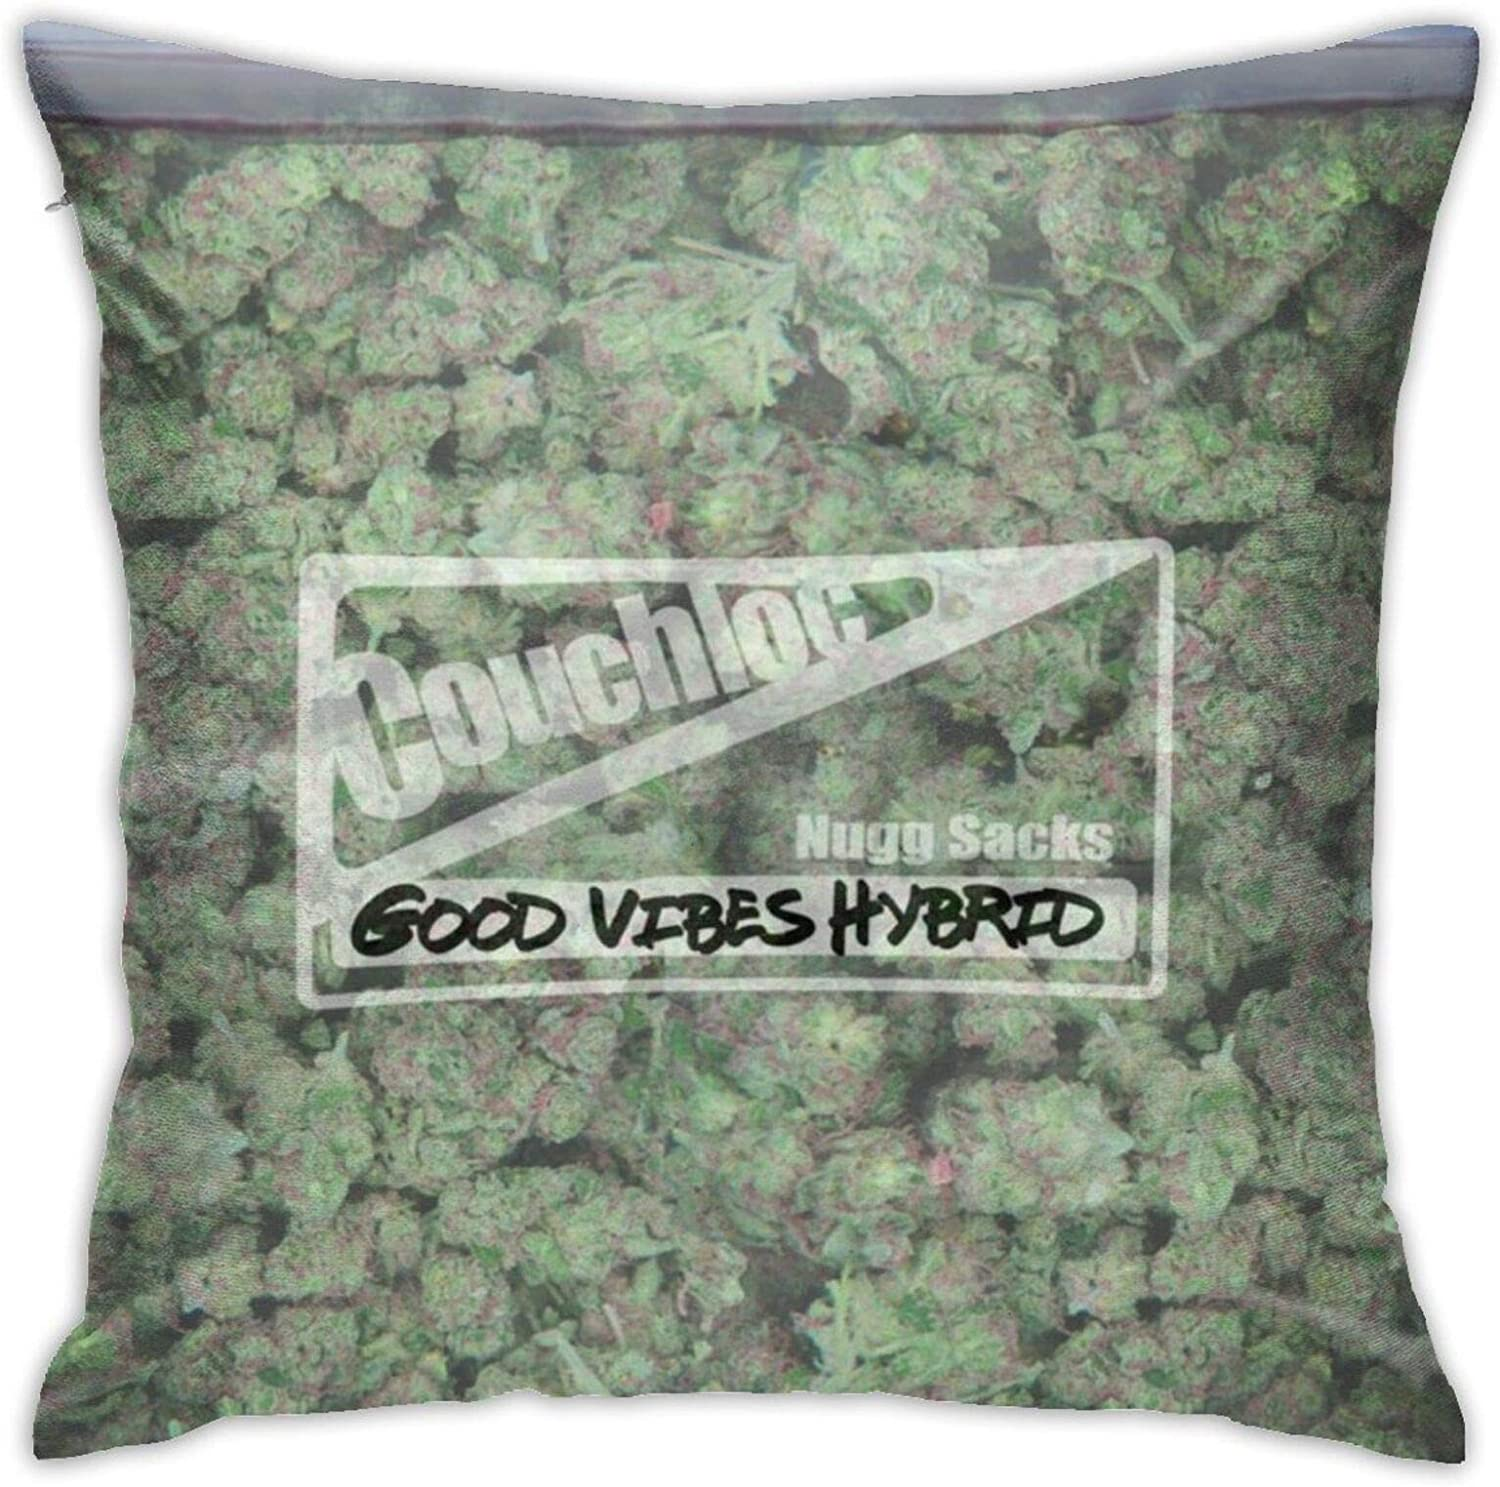 antoipyns Bag of Weed Throw 3D Printed Pattern Square Cushiondecorative Pillow Case Home Decor Square 18x18 Inches Pillowcase/Living Room/Car/Bedroom